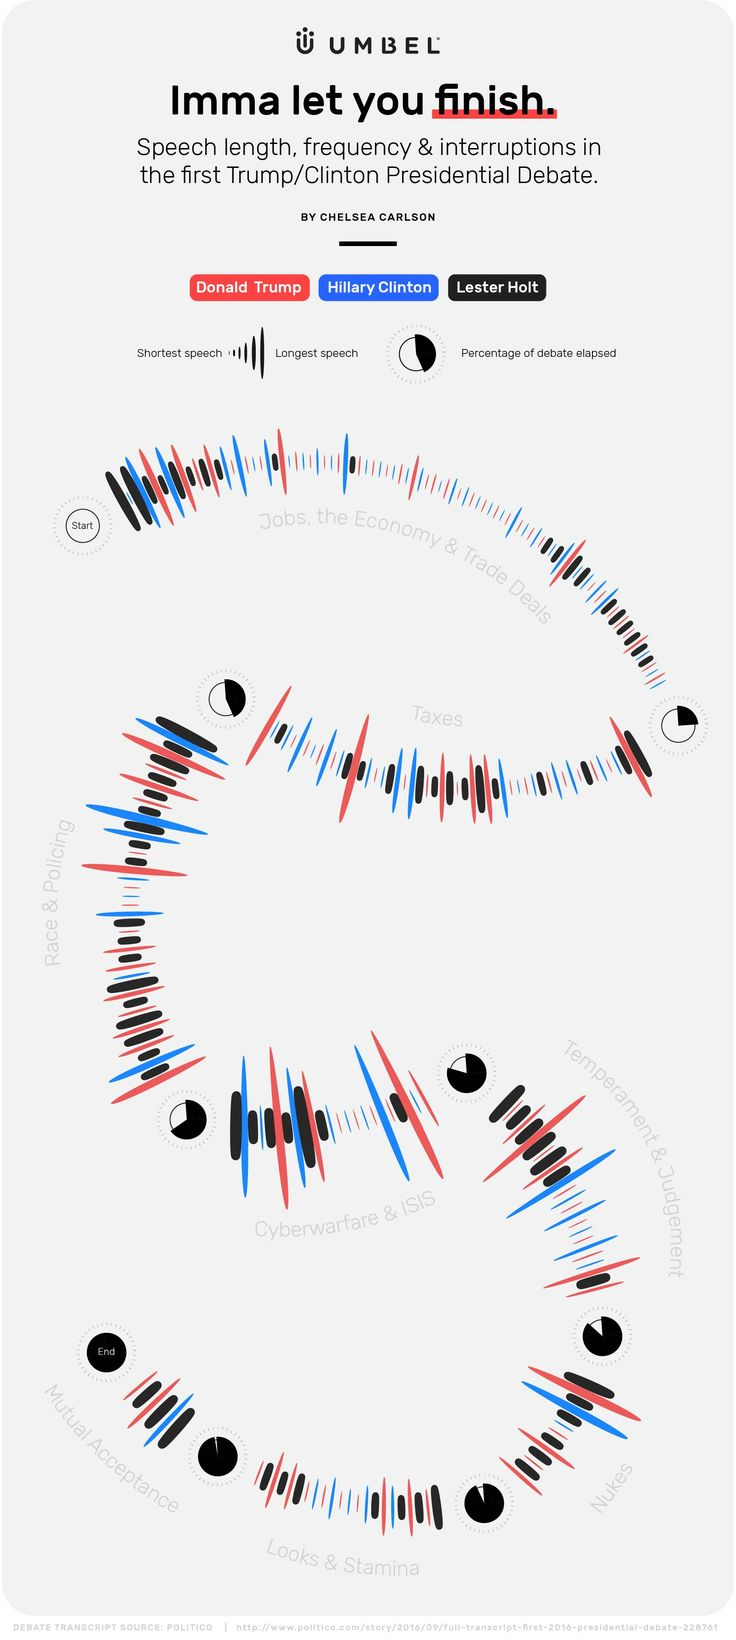 Visualizing speech length, frequency & interruptions in the first Trump/Clinton Presidential Debate.